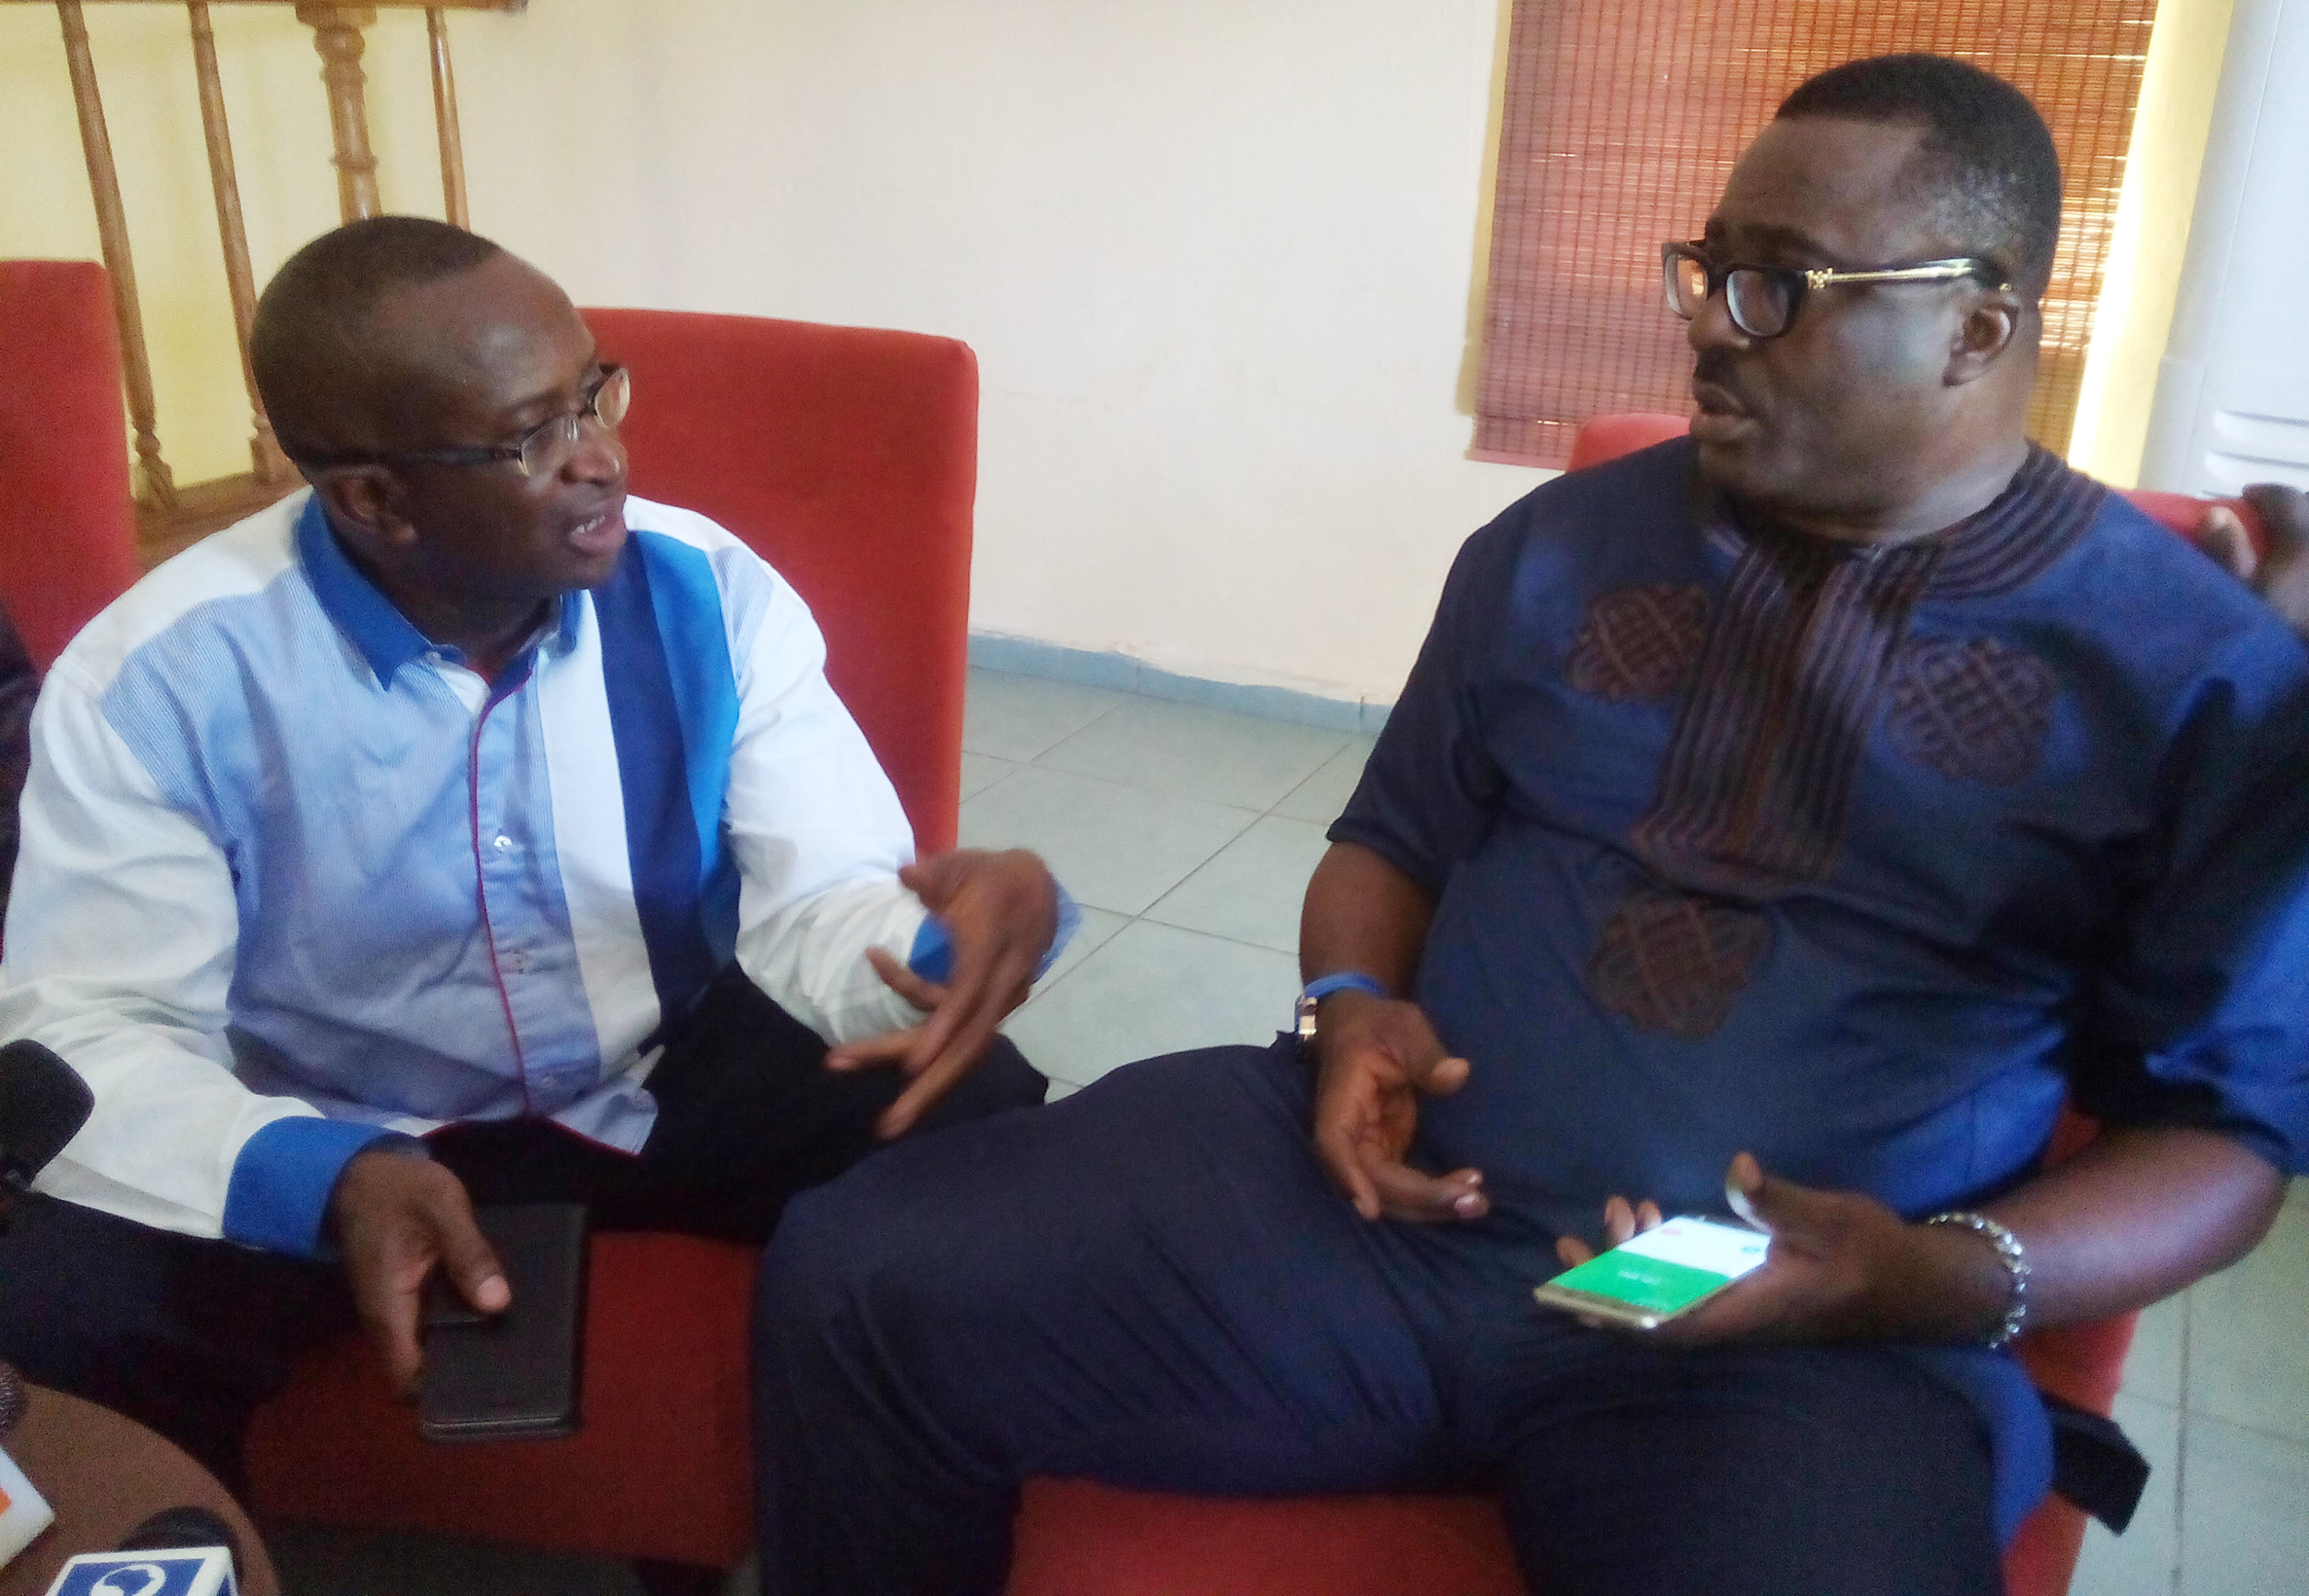 NDDC Chairmanship nominee, Senator Ndoma Egba and APC National Vice Chairman, South South, Prince Hilliar Eta